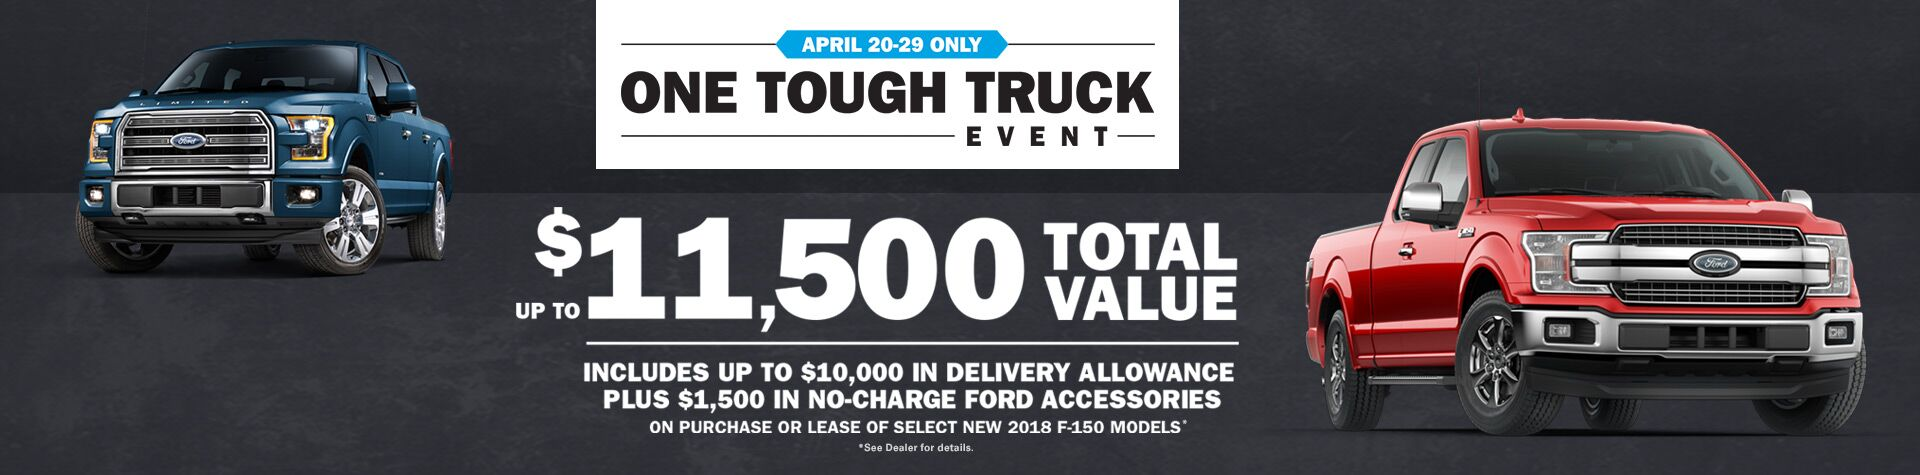 Tough Truck Event